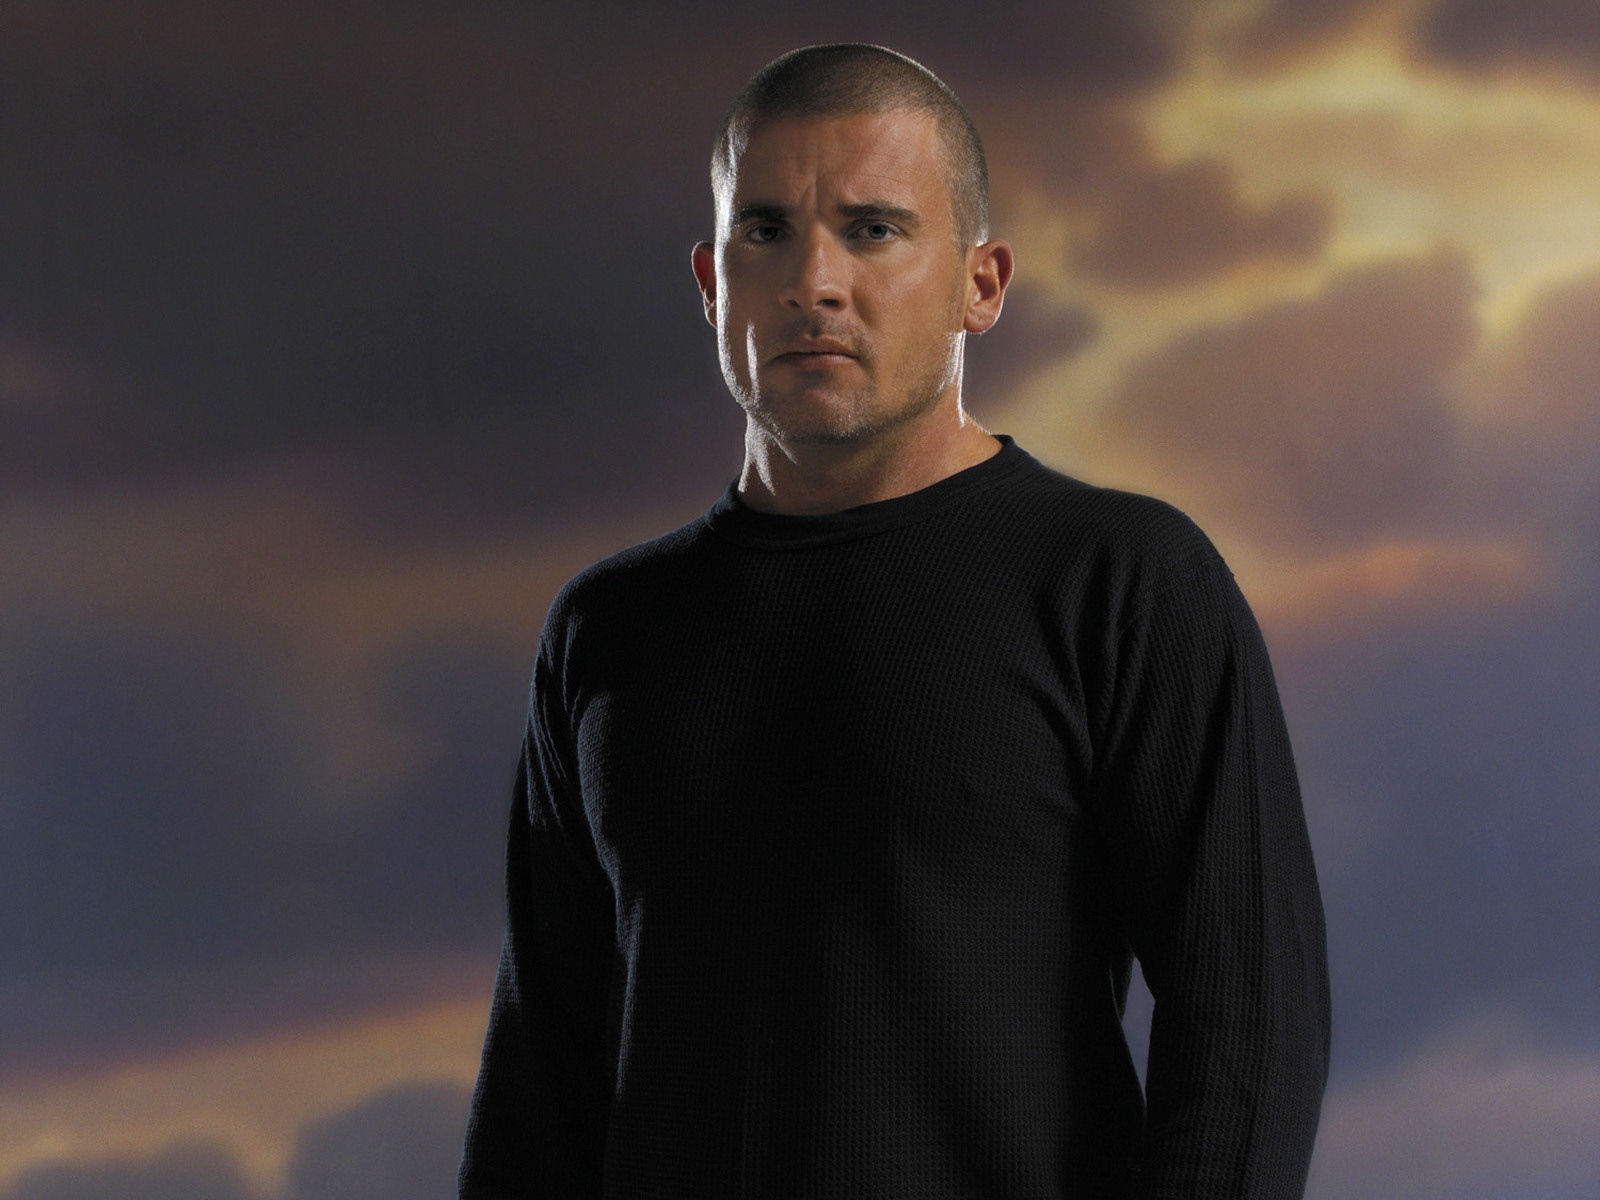 Dominic_Purcell_05_1600x1200.jpg